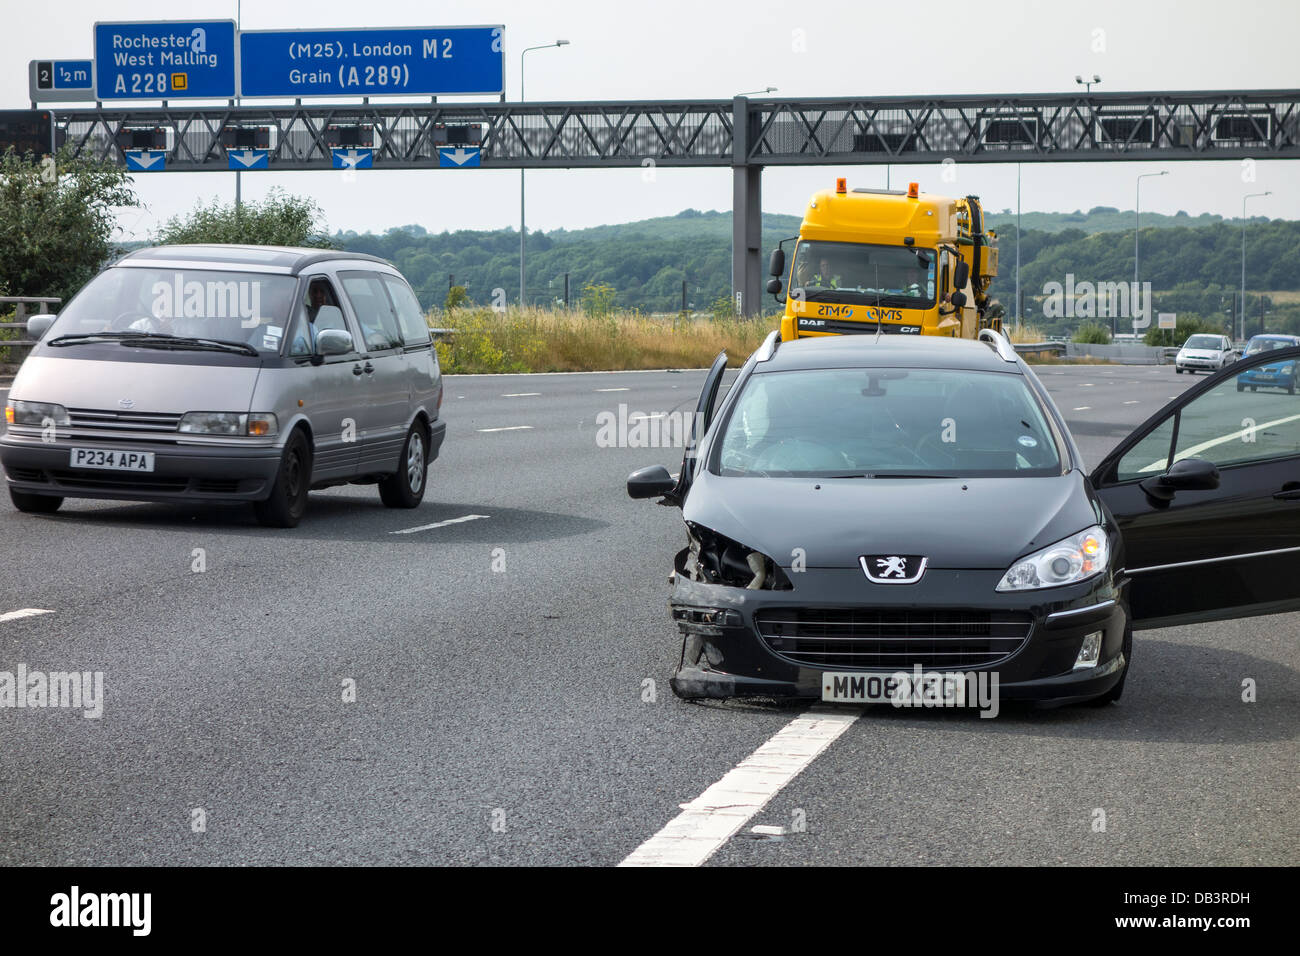 Motorway Accident High Speed Puncture. Collision with central reservation barrier. Stock Photo